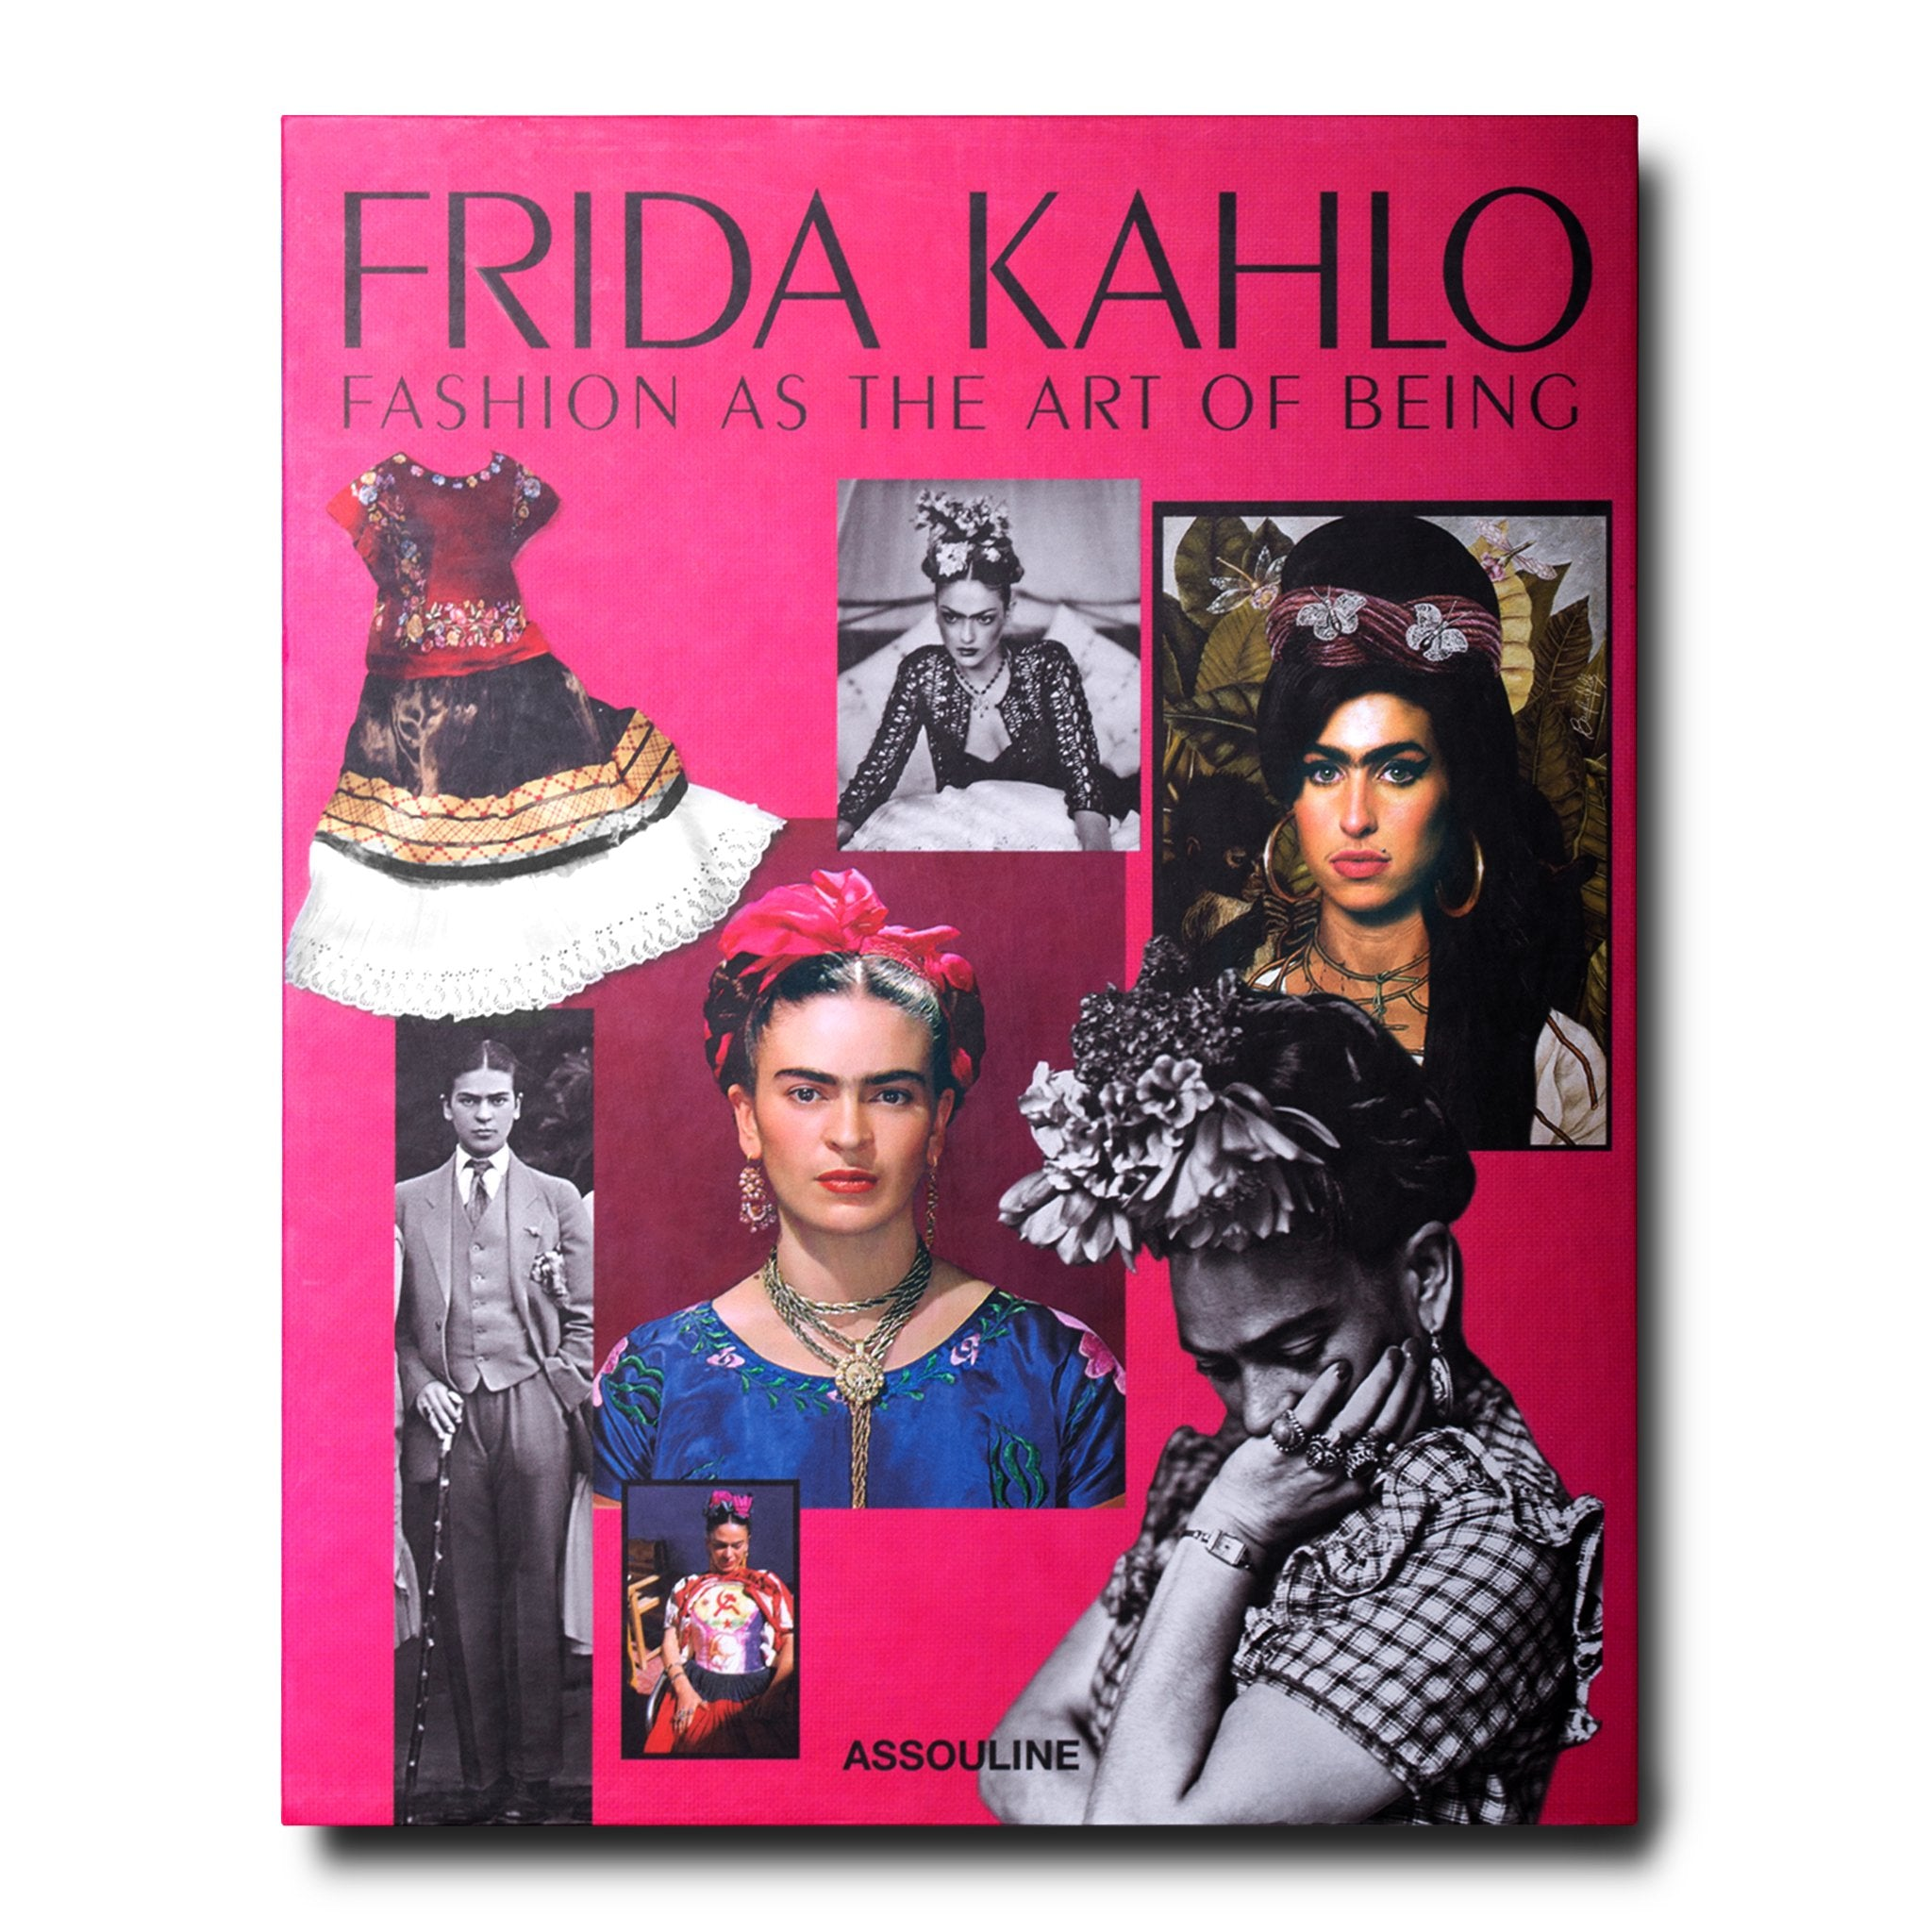 Book Cover Of Fashion ~ Frida kahlo fashion as the art of being book by s m vidal assouline